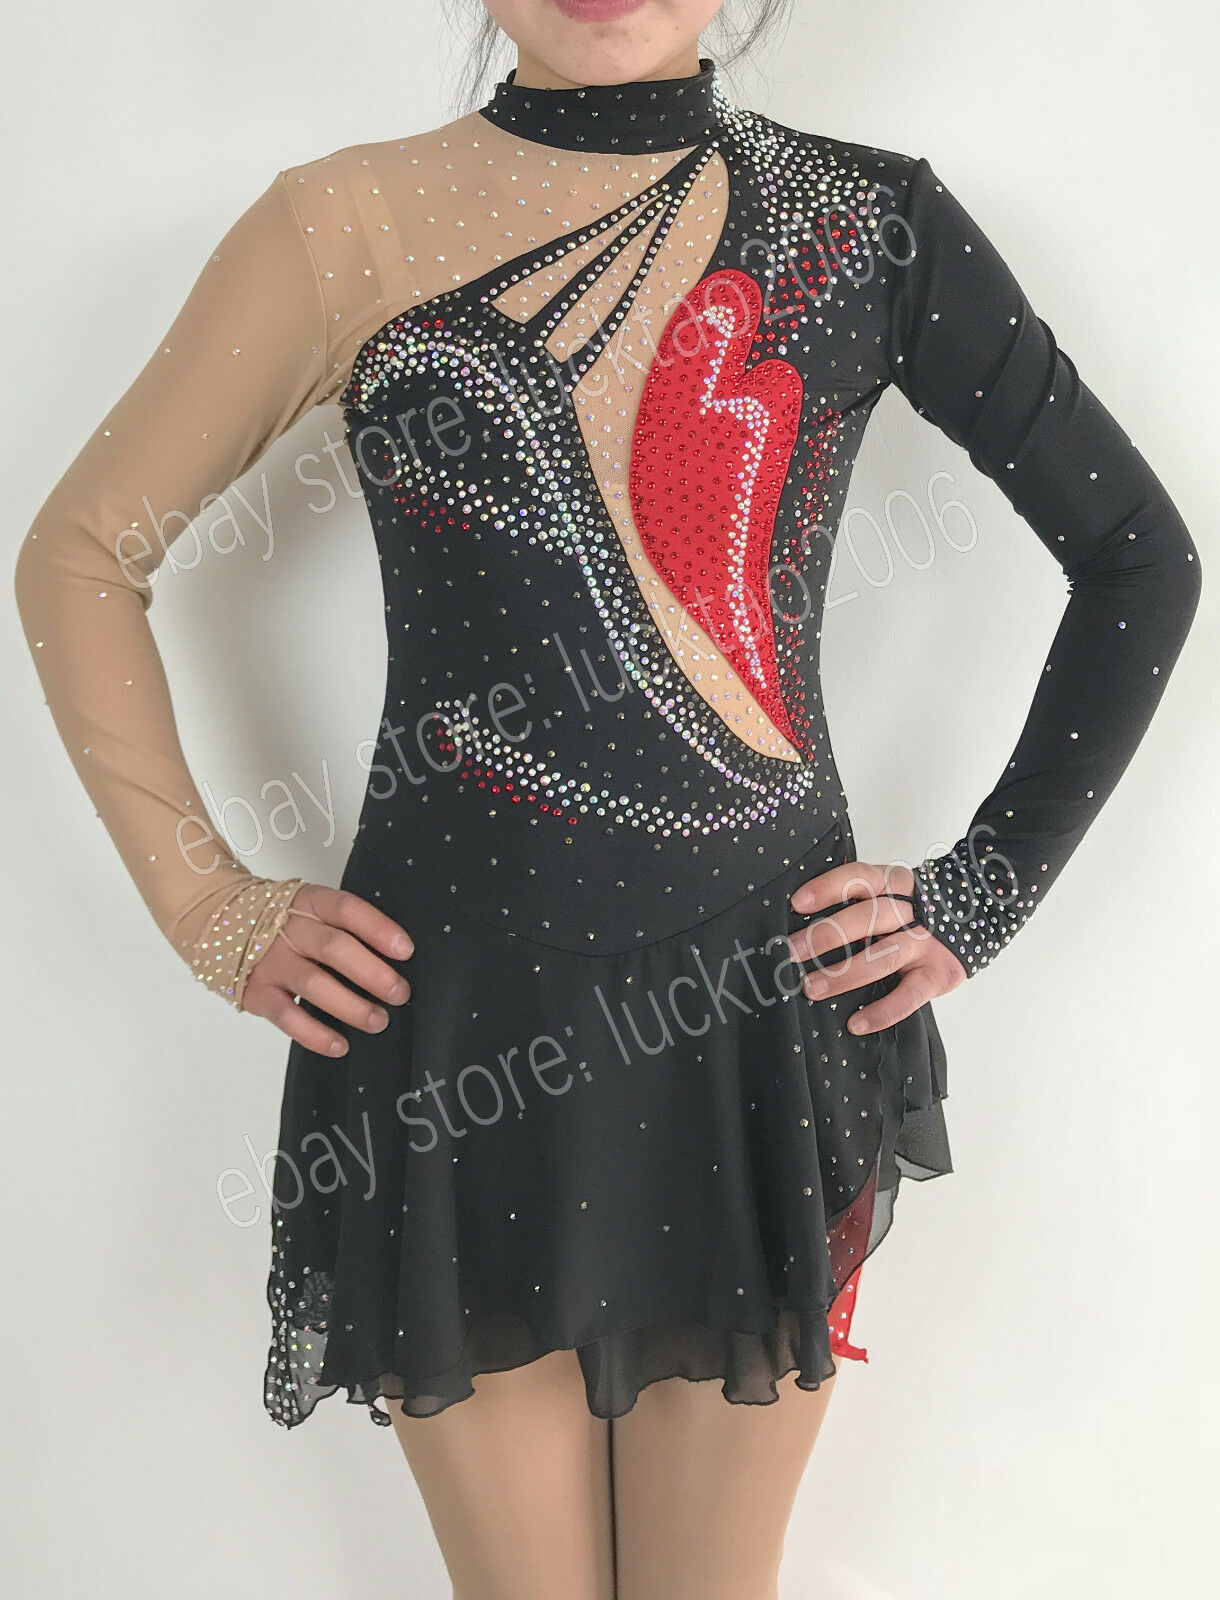 New style Figure skating Ice Skating  Dress Gymnastics Baton Twirling Dress S8984  ultra-low prices